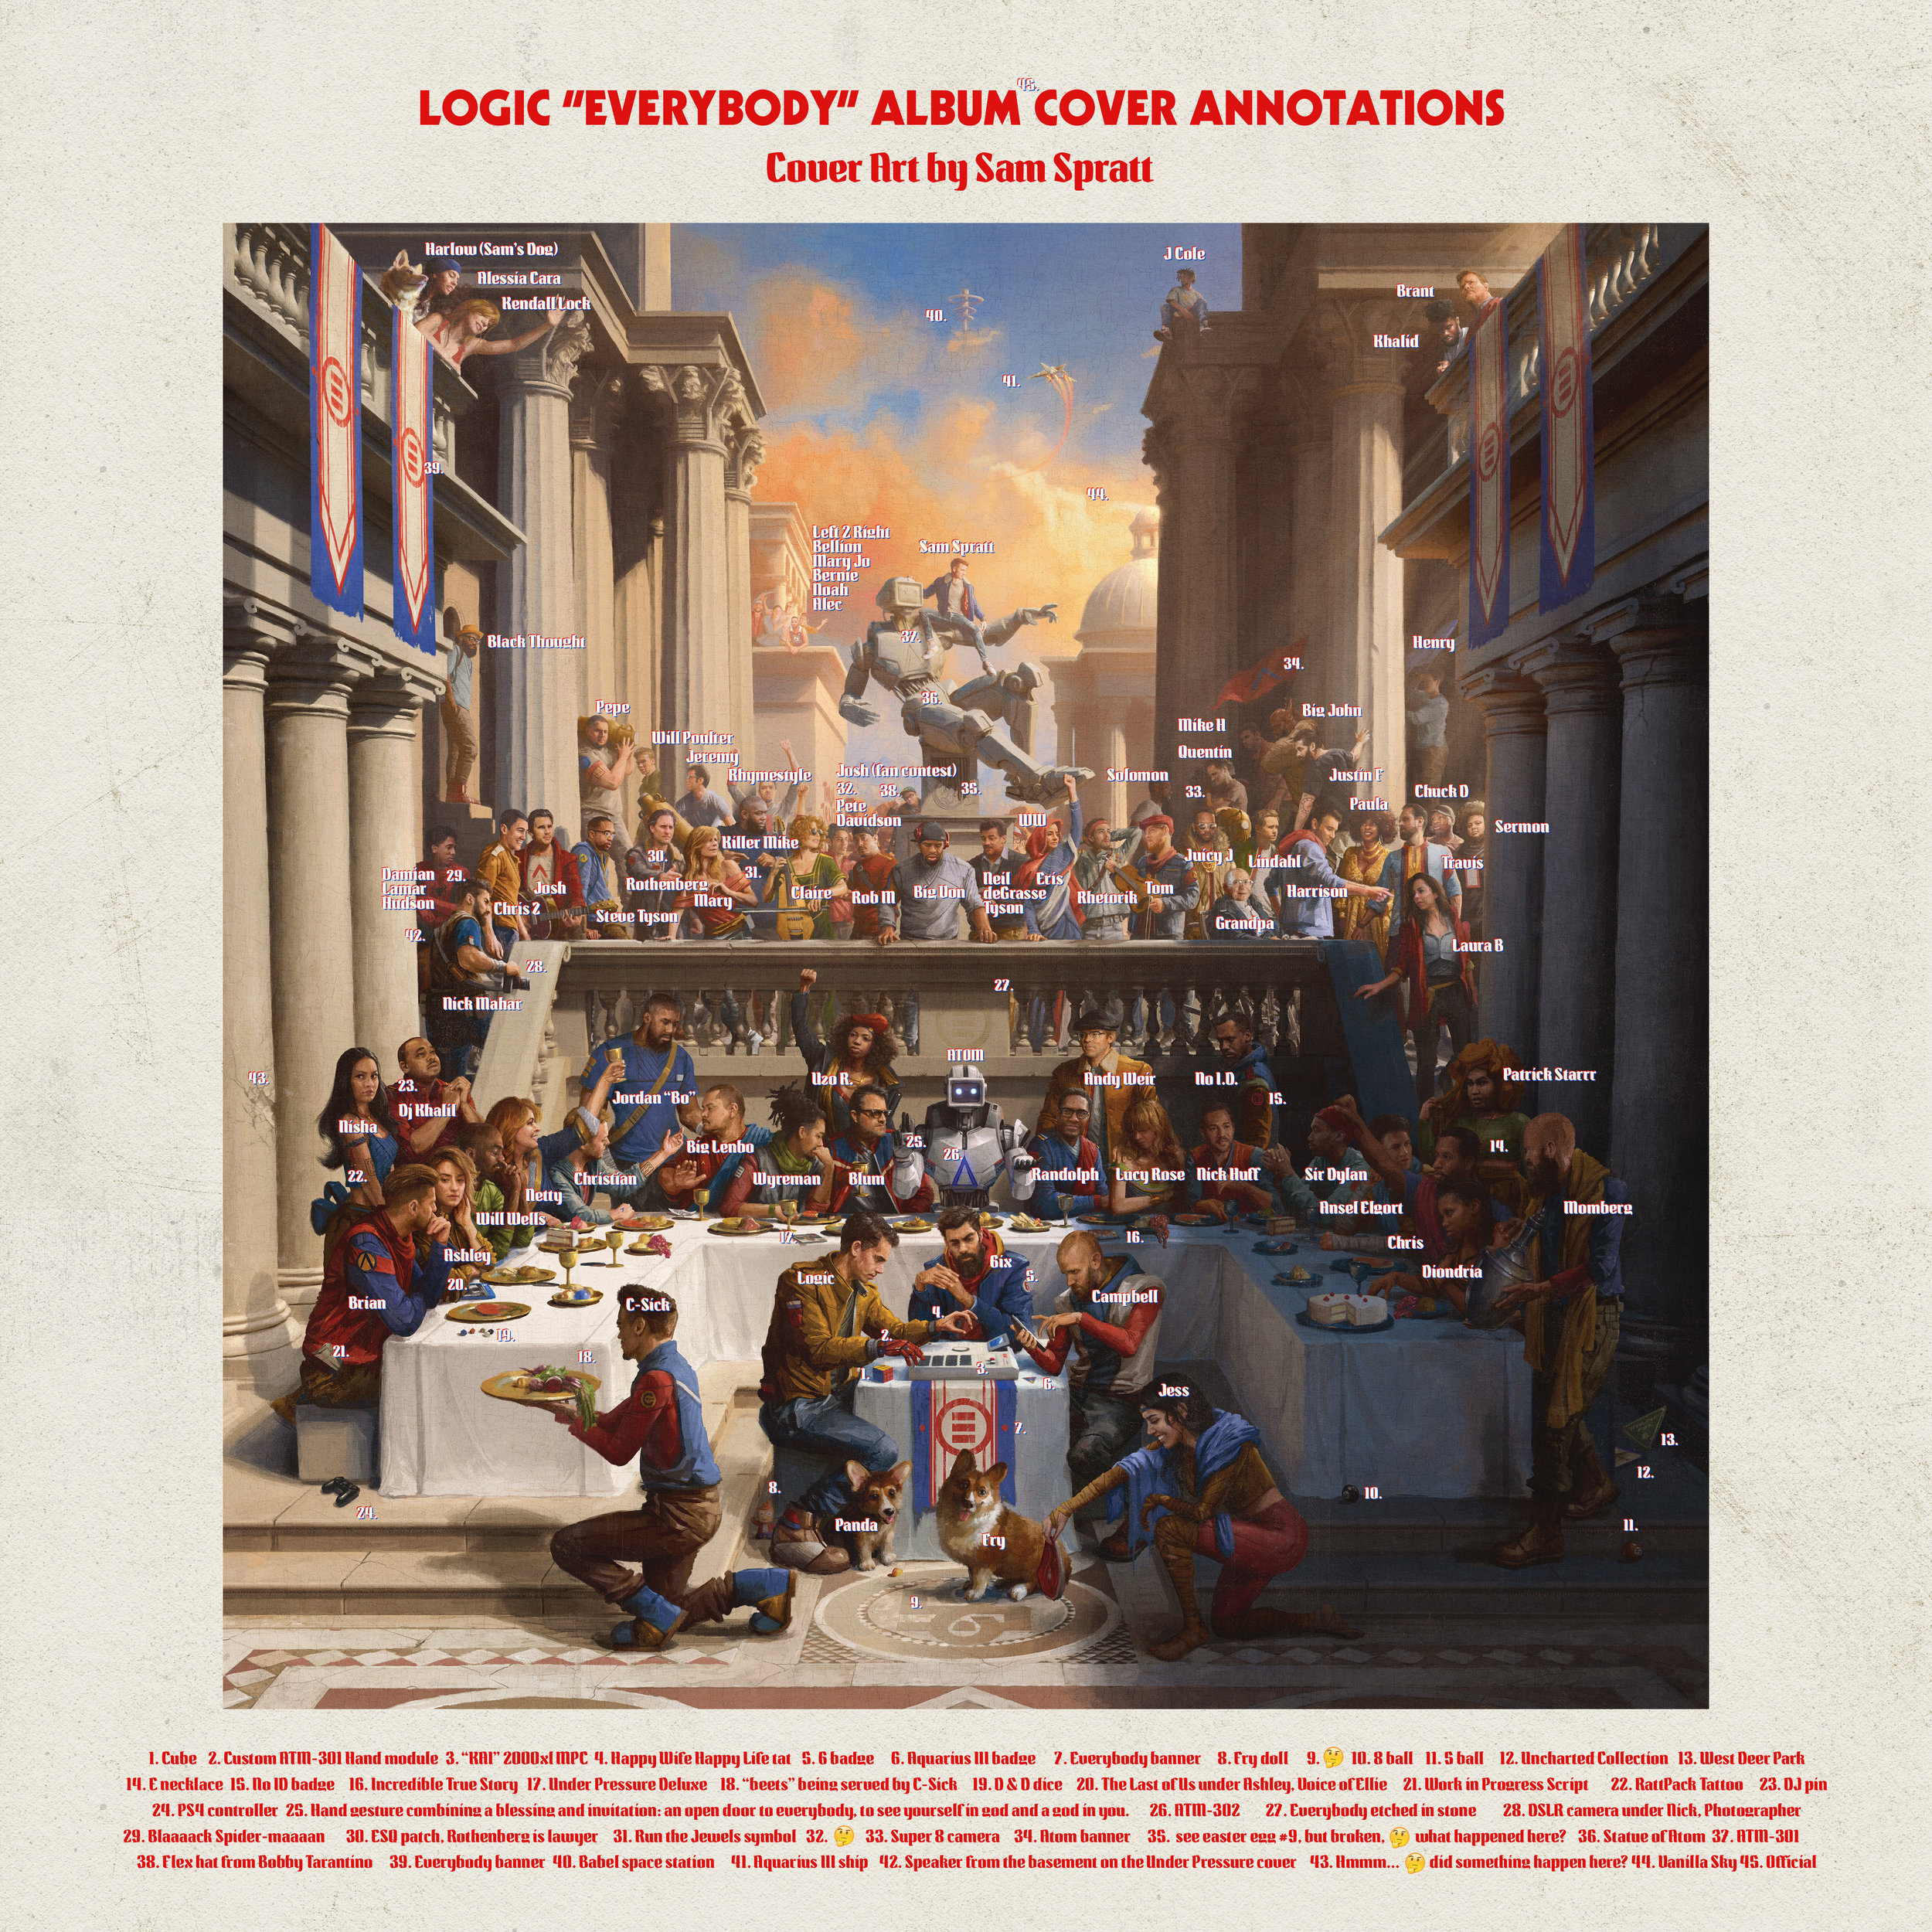 SamSpratt_Logic_Everybody_AlbumCover_Annotations.jpg